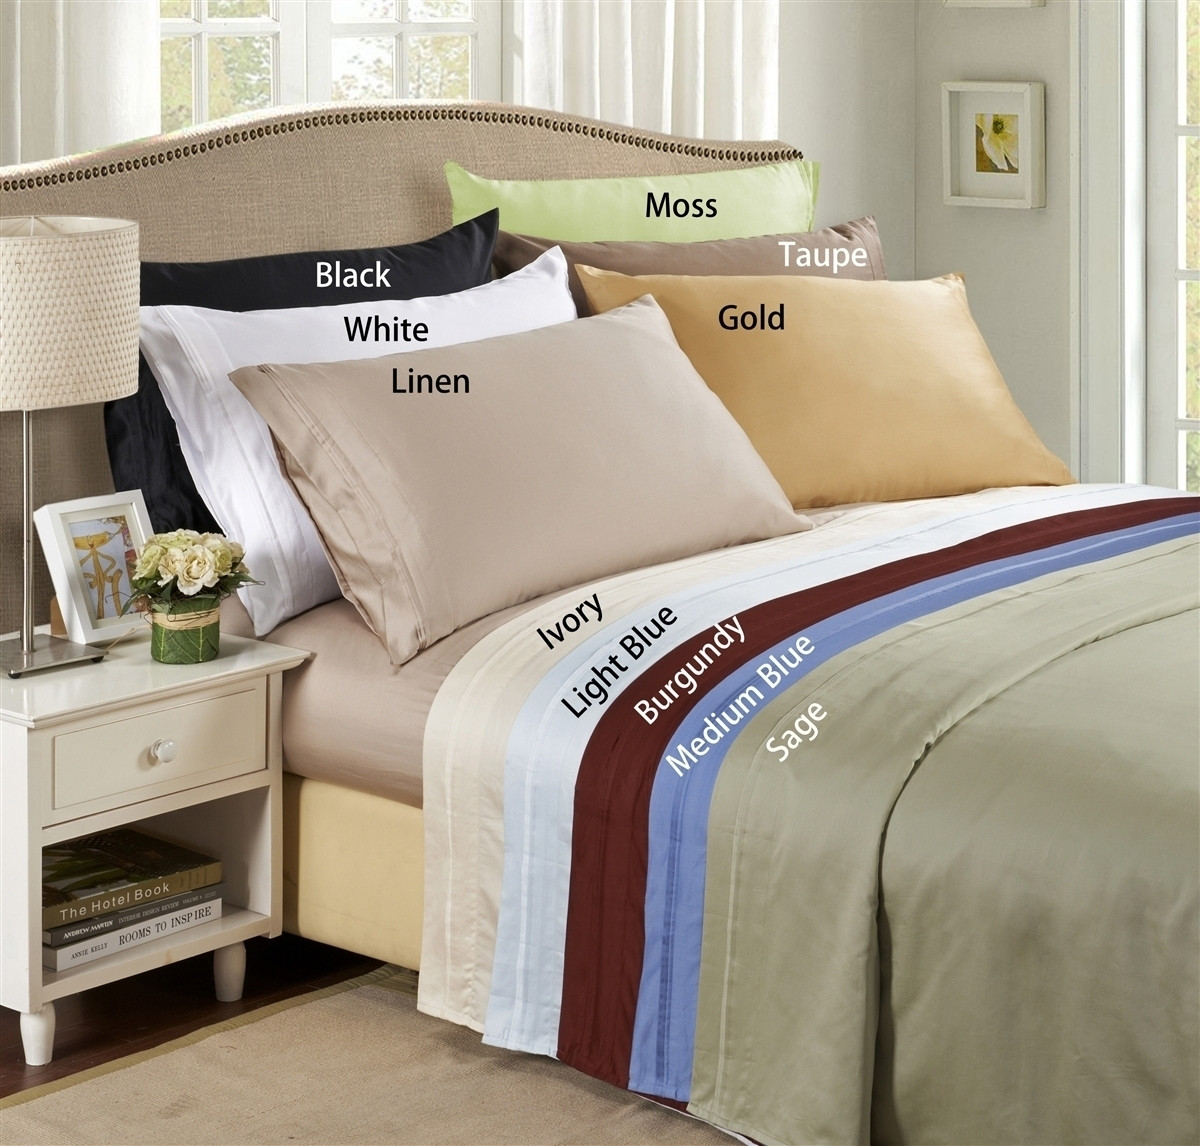 100 Egyptian Cotton Sheets Lido Collection 600 Thread Count Egyptian Cotton California King Bed Sheets